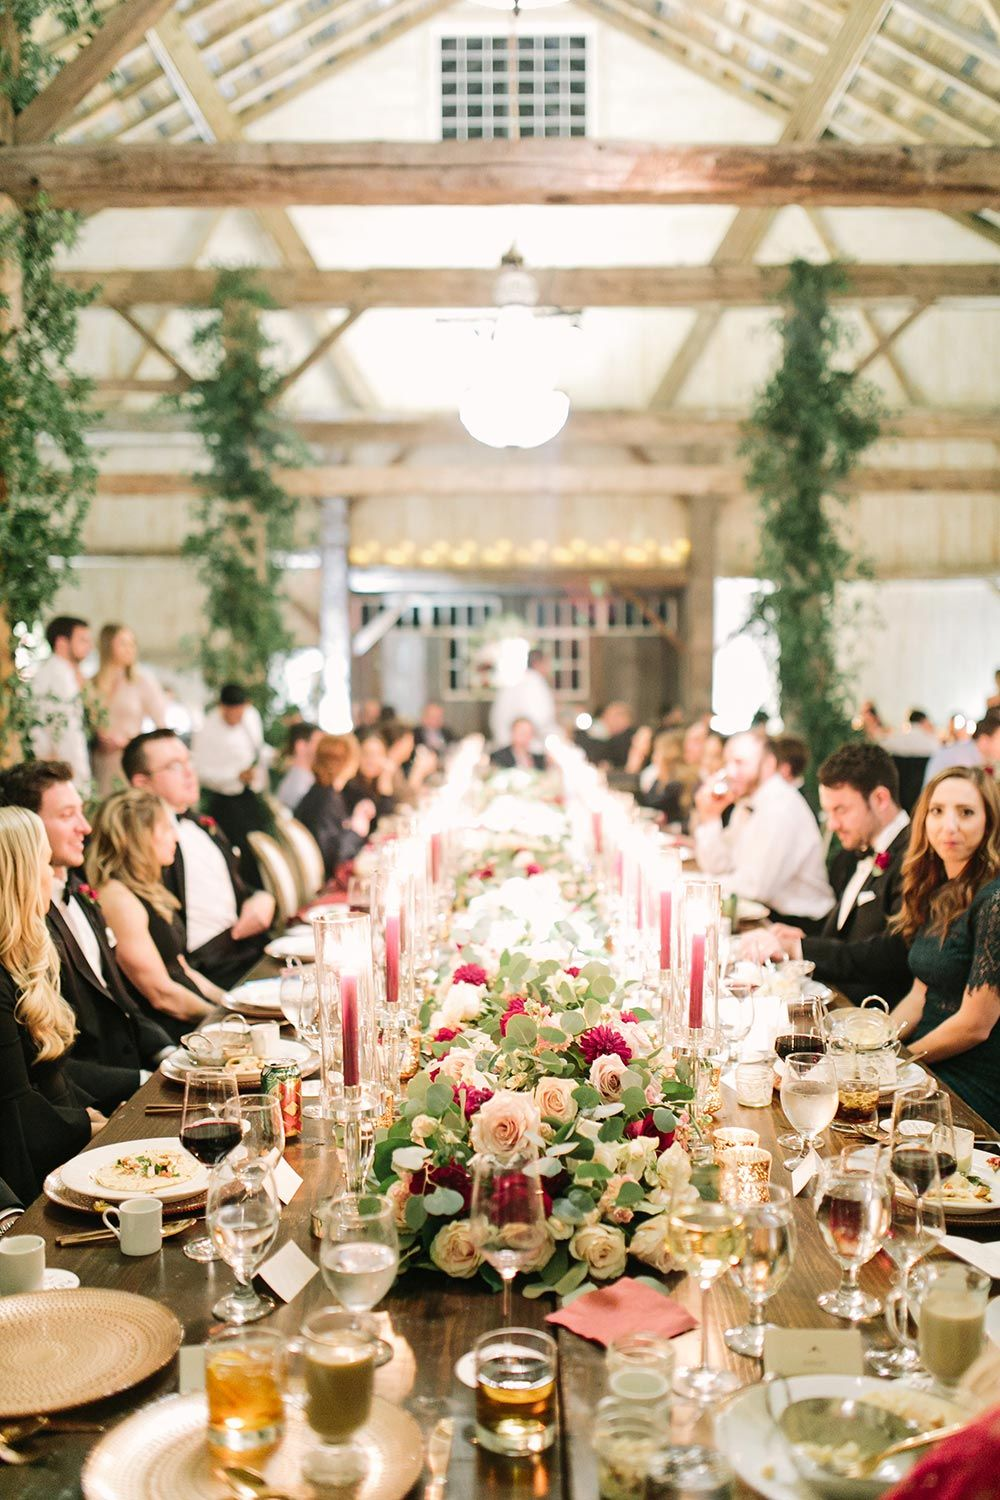 Classic elegance at this black tie wedding in the woods